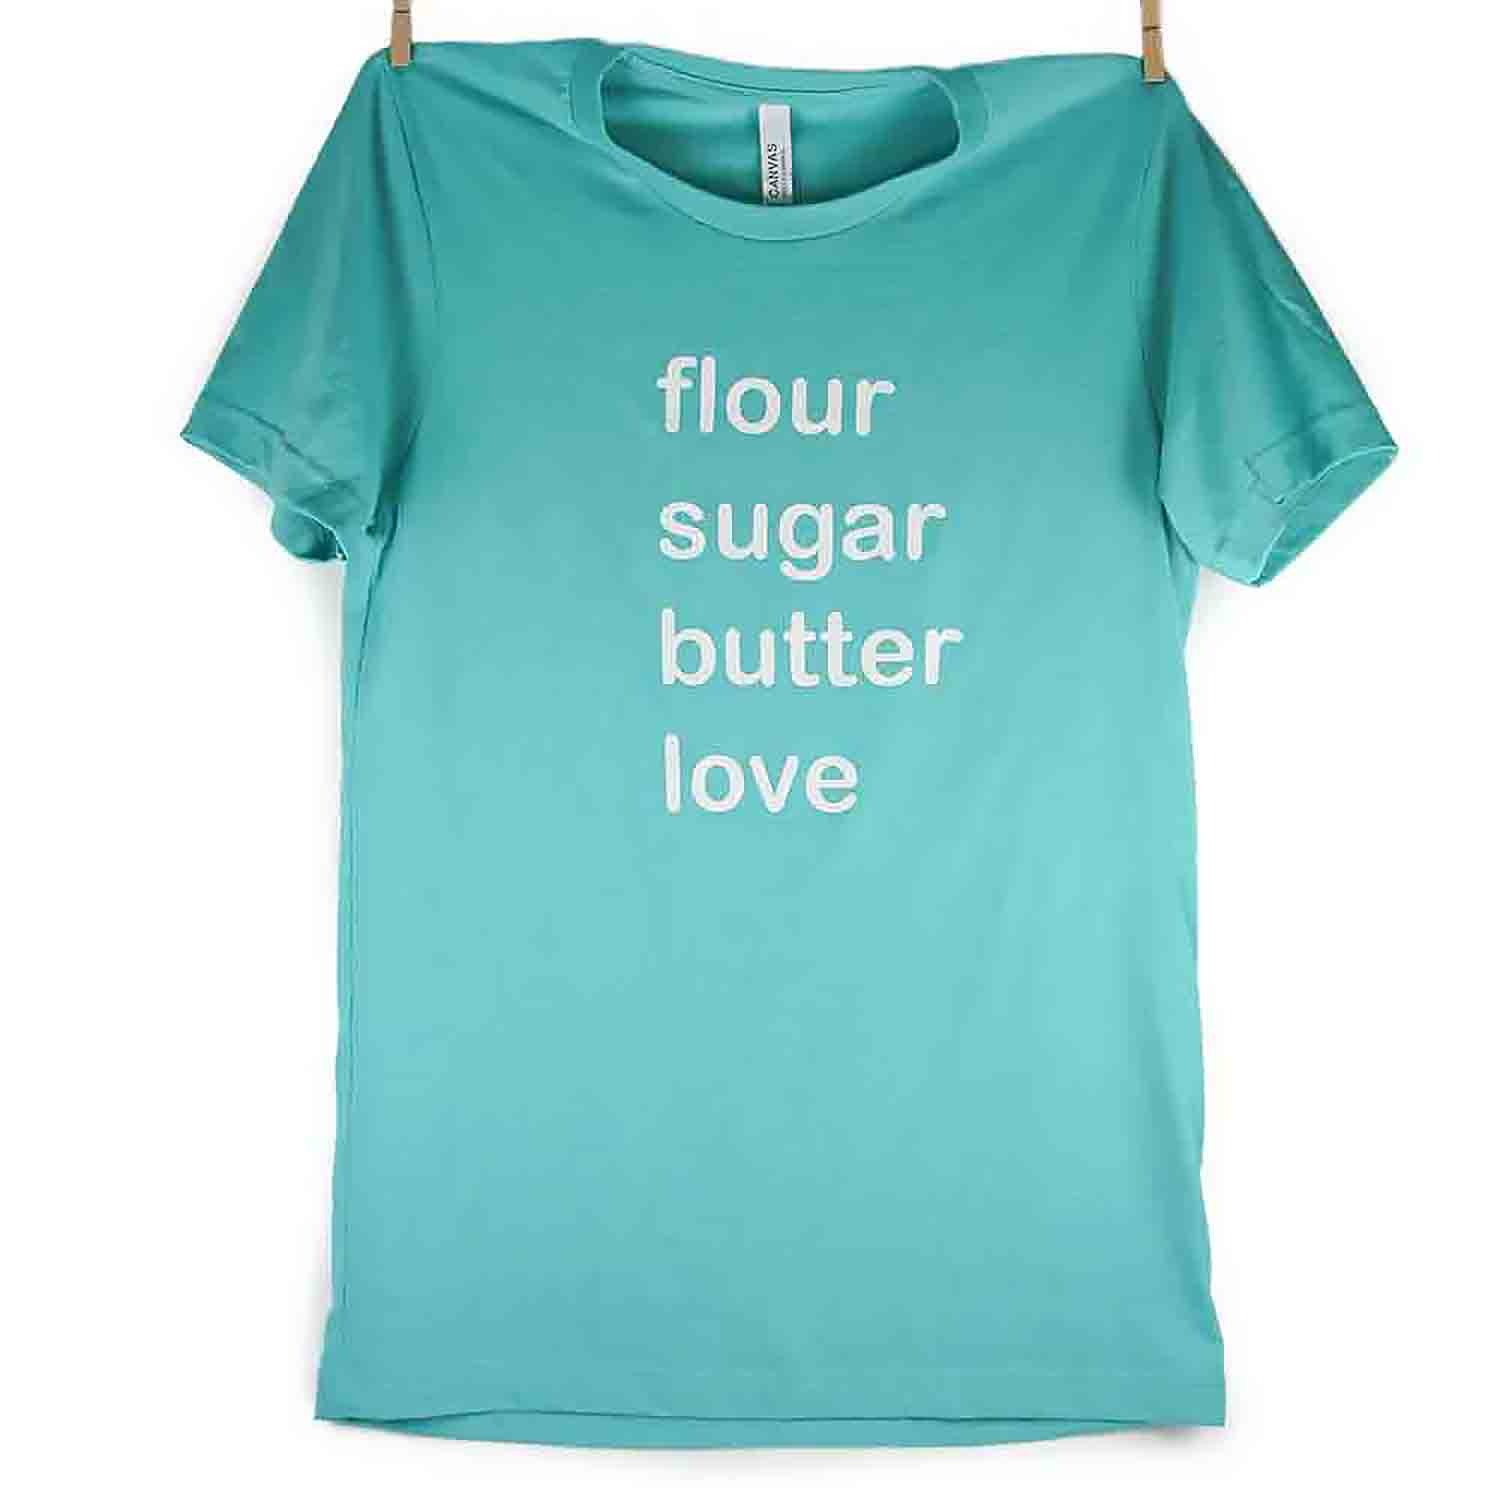 Teal Flour Sugar Butter Love T-Shirt - Large